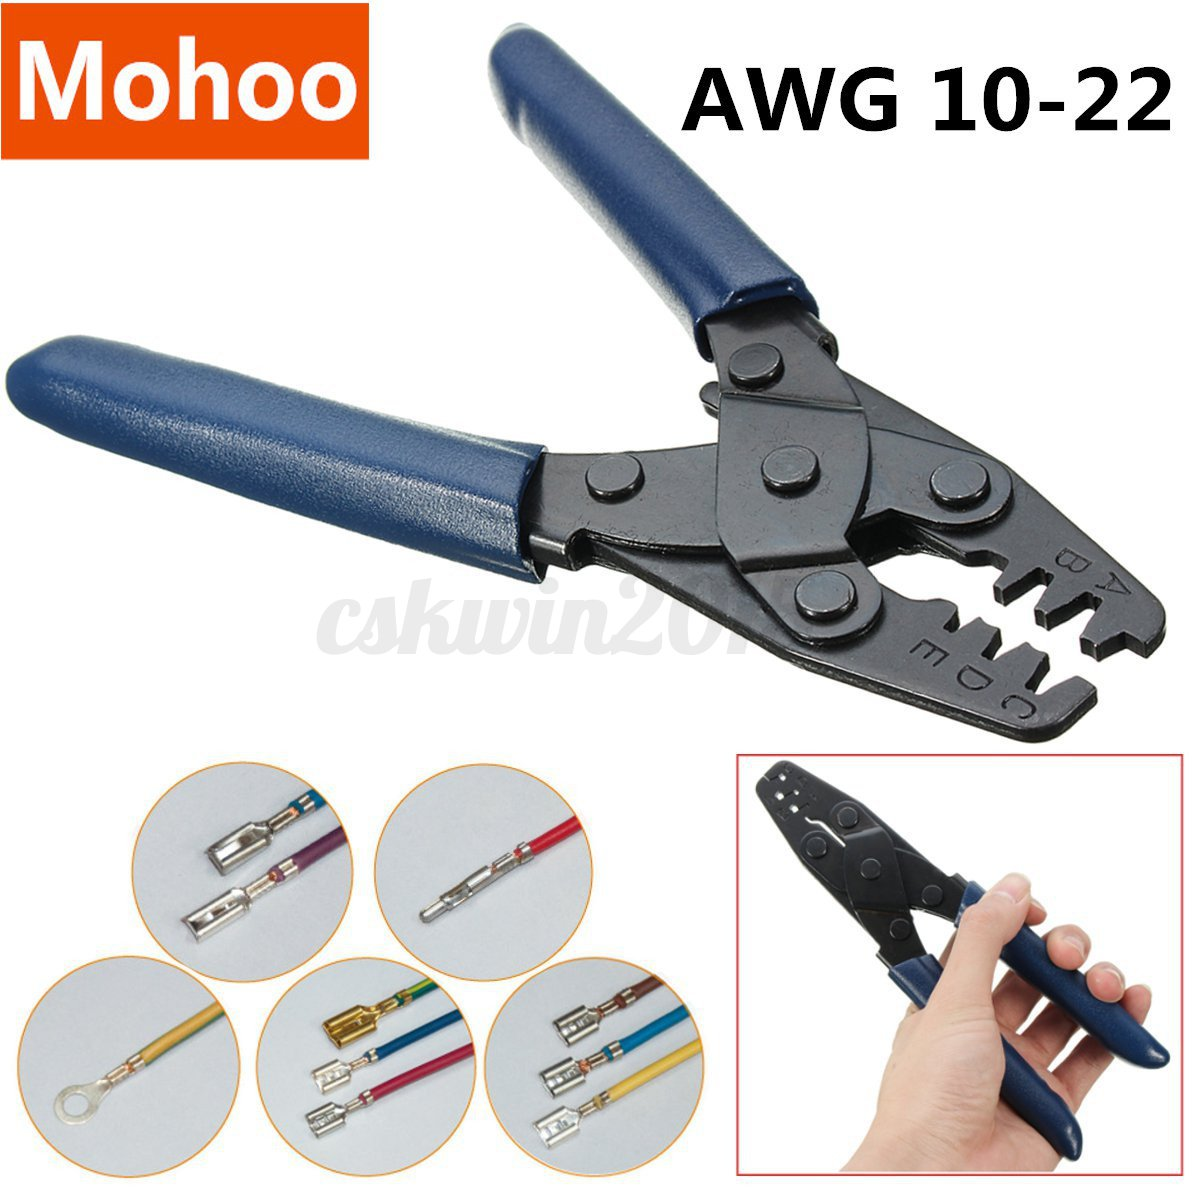 AWG 10-22 Double Terminal Crimp Electrical Crimping Tool Wire ...